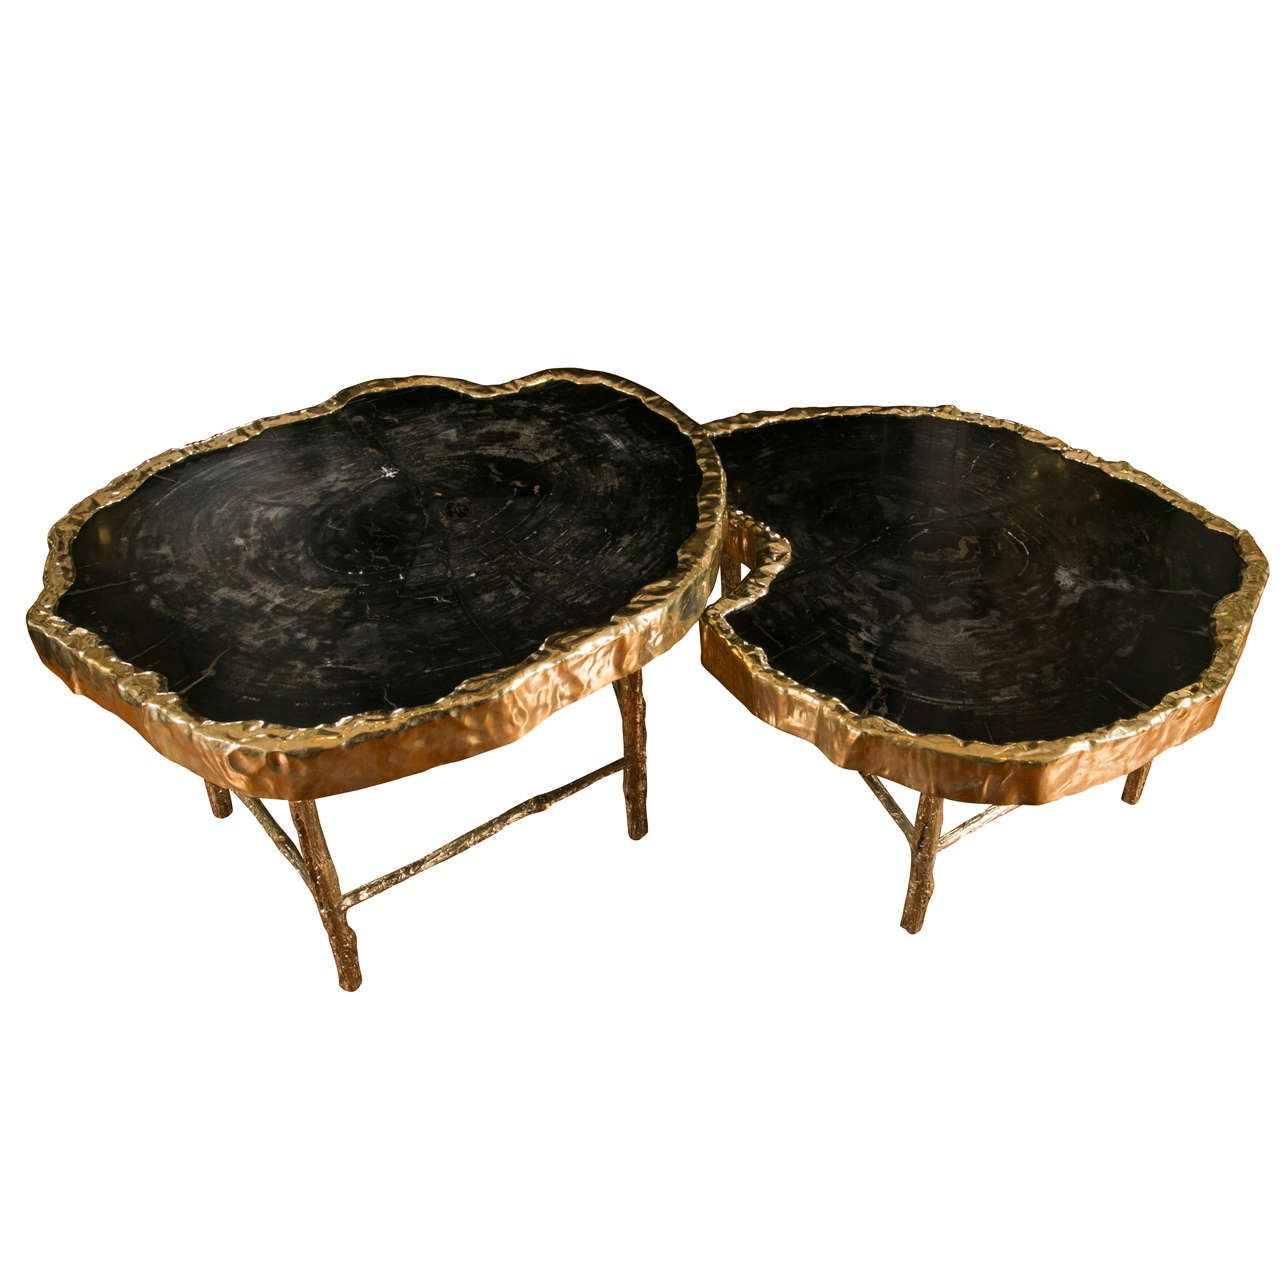 Fabulous pair of petrified wood coffee tables from a